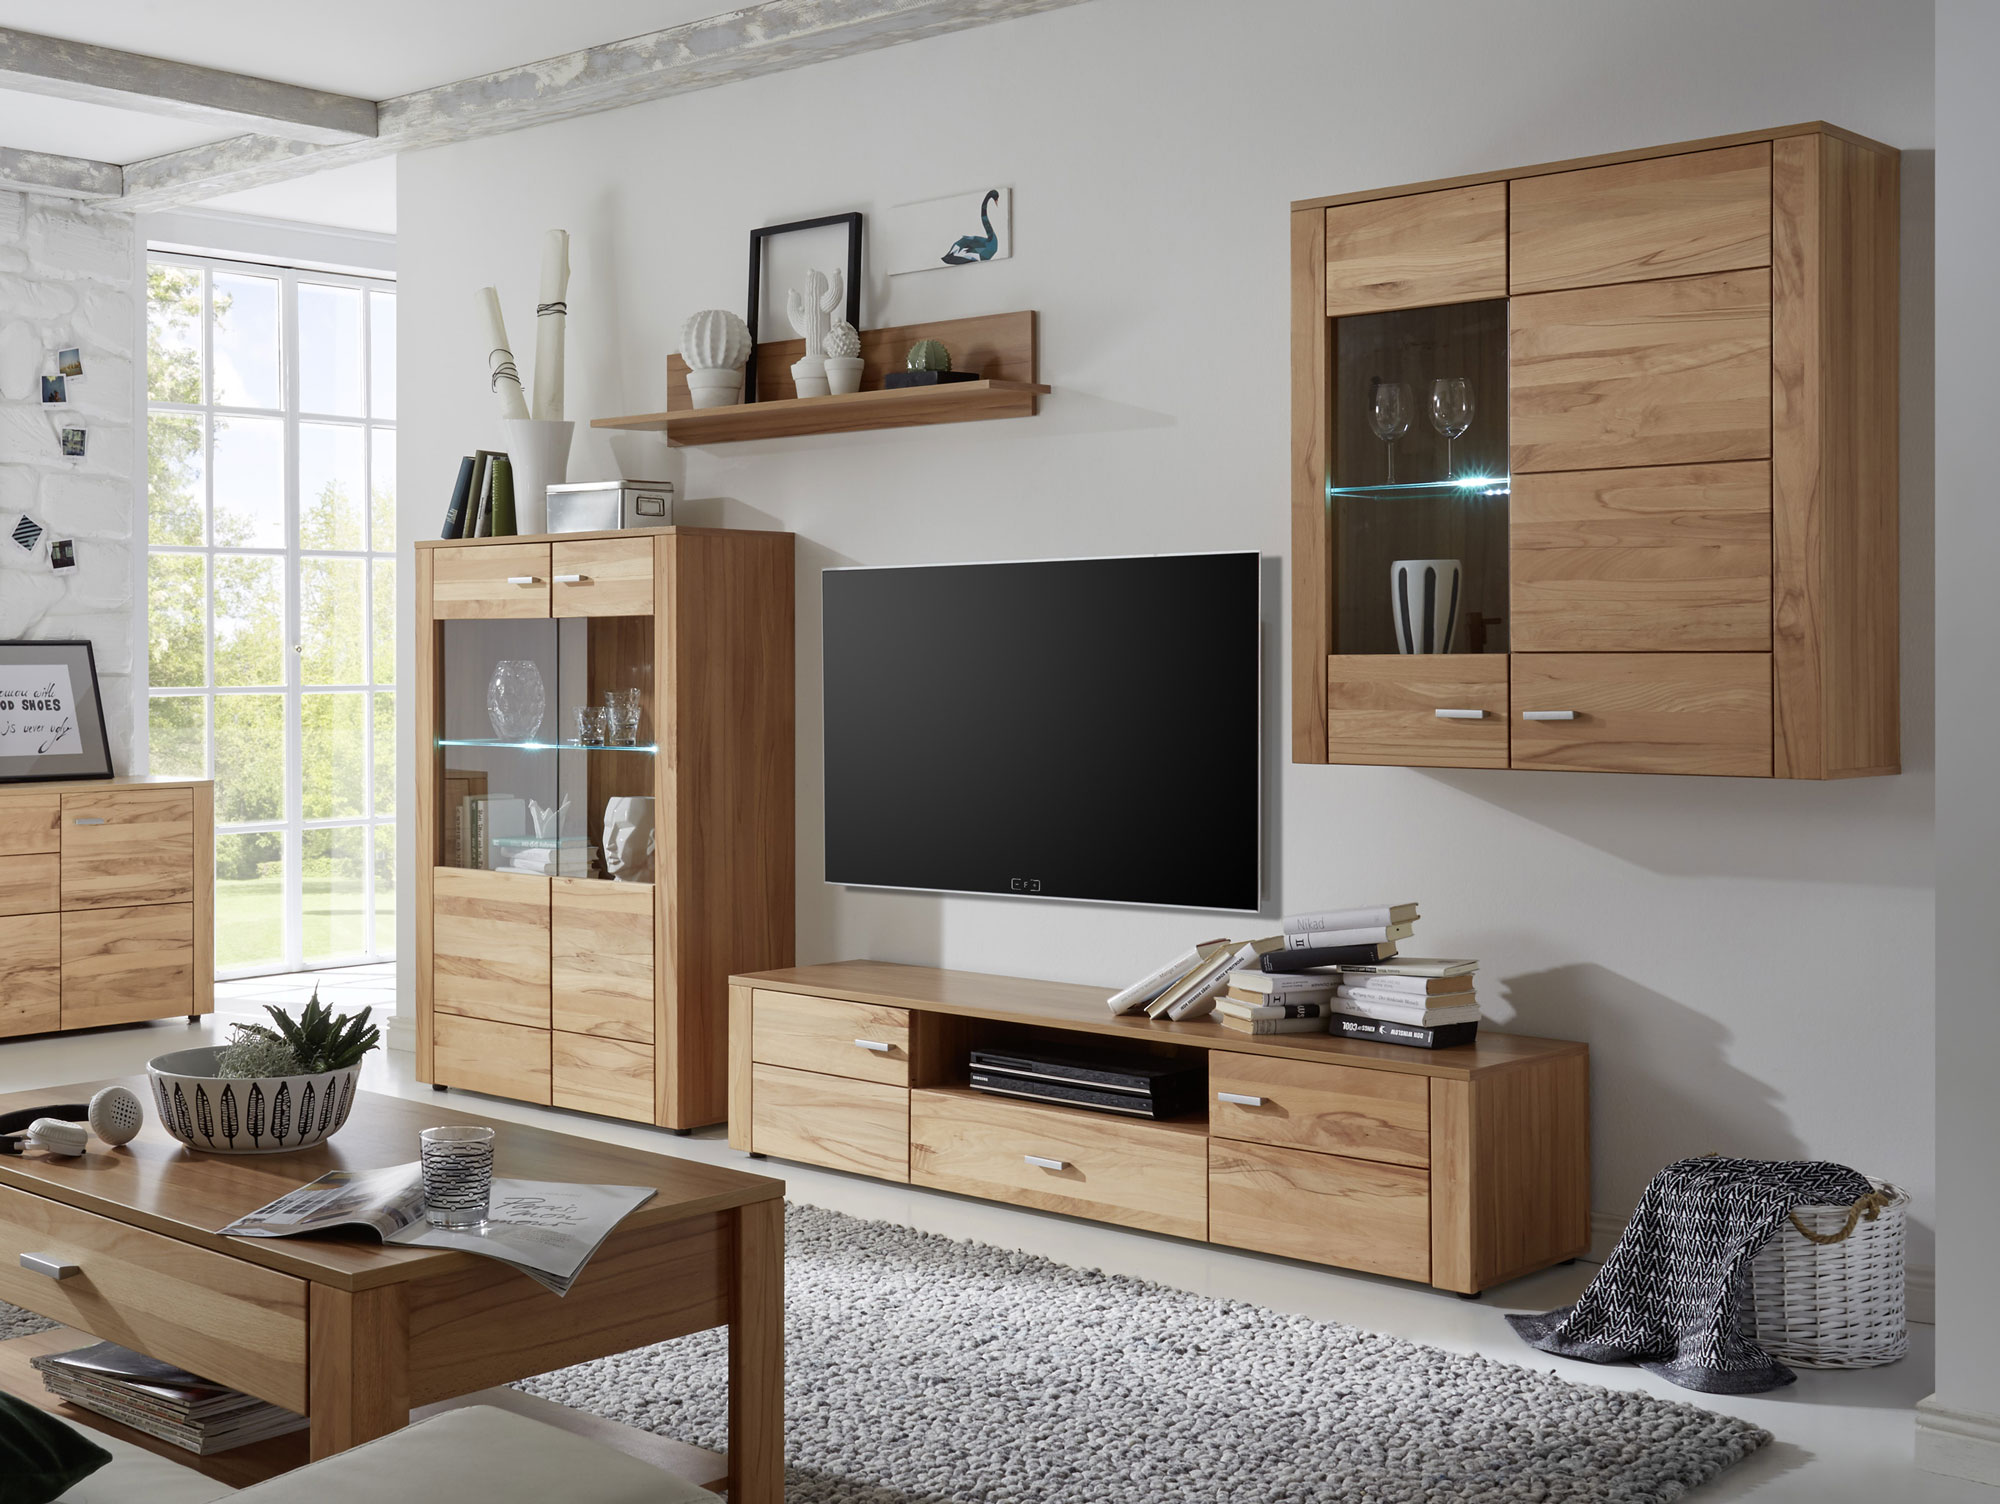 wohnwnde kernbuche cheap wohnwand kernbuche massiv campus zu fairen preise with wohnwnde. Black Bedroom Furniture Sets. Home Design Ideas